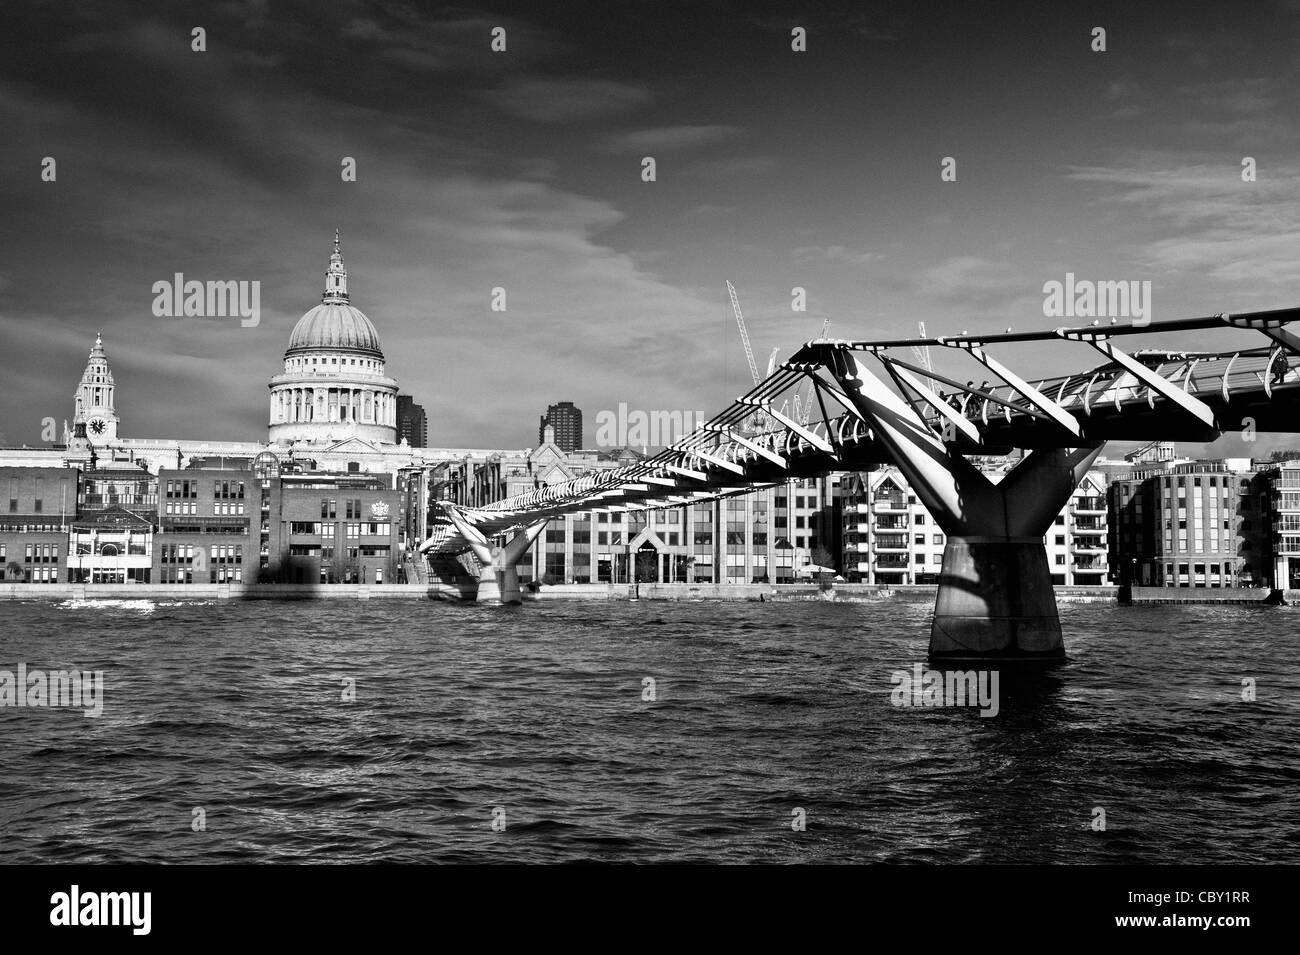 St Paul's Cathedral and the Millennium bridge over the river Thames, London. - Stock Image